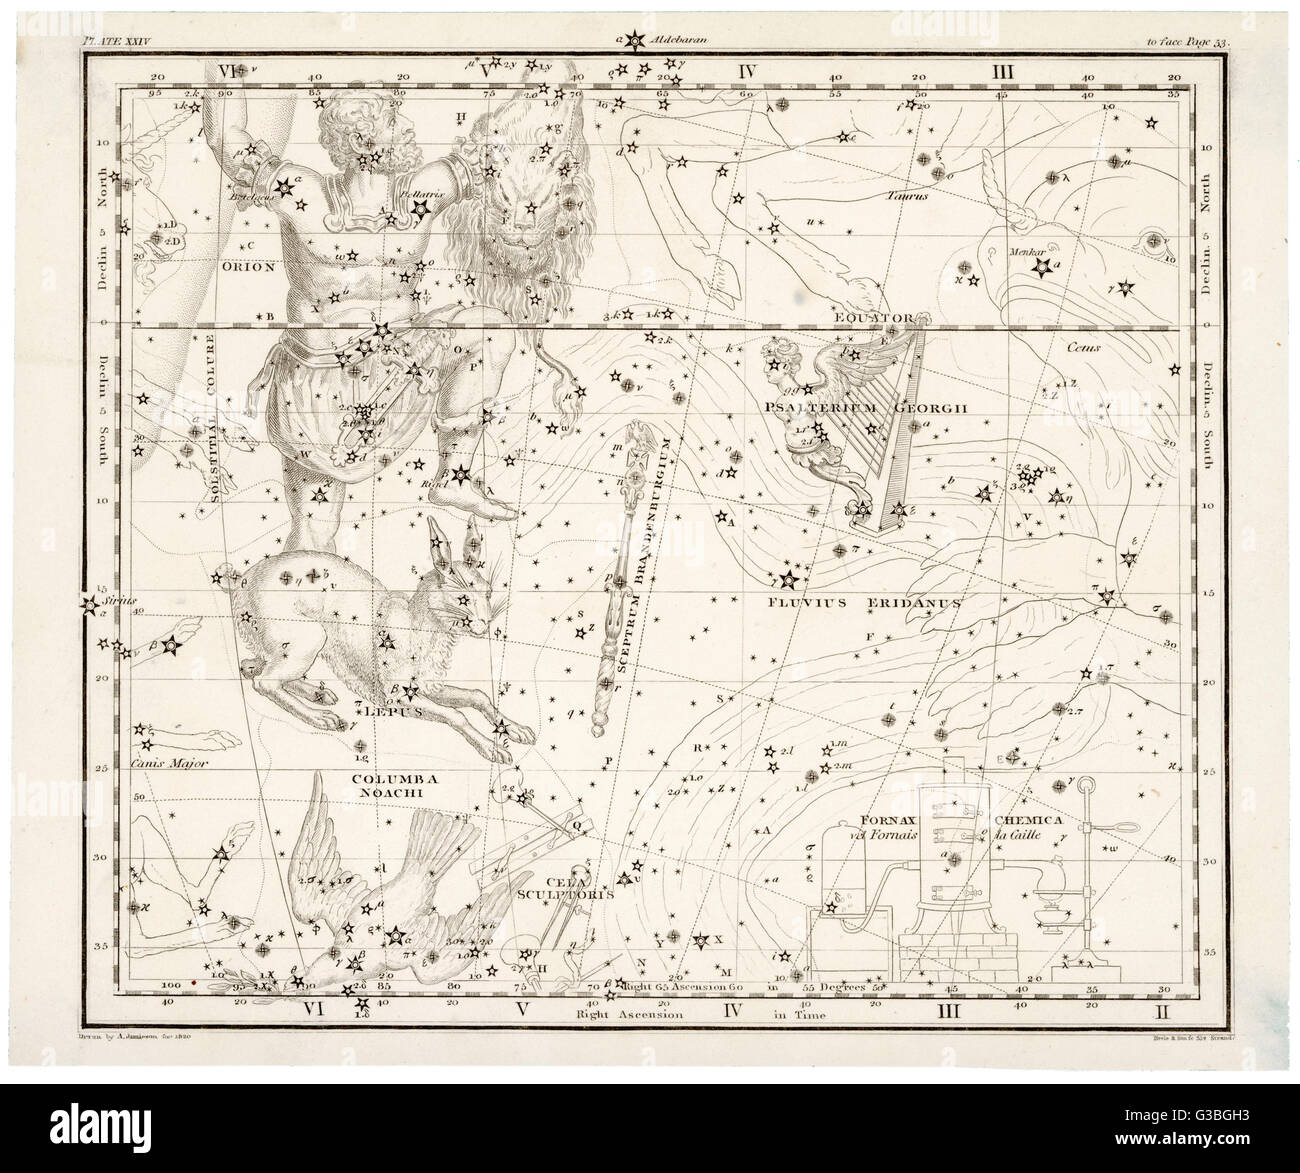 Orion Star Map Stock Photos Orion Star Map Stock Images Alamy - Orion star map